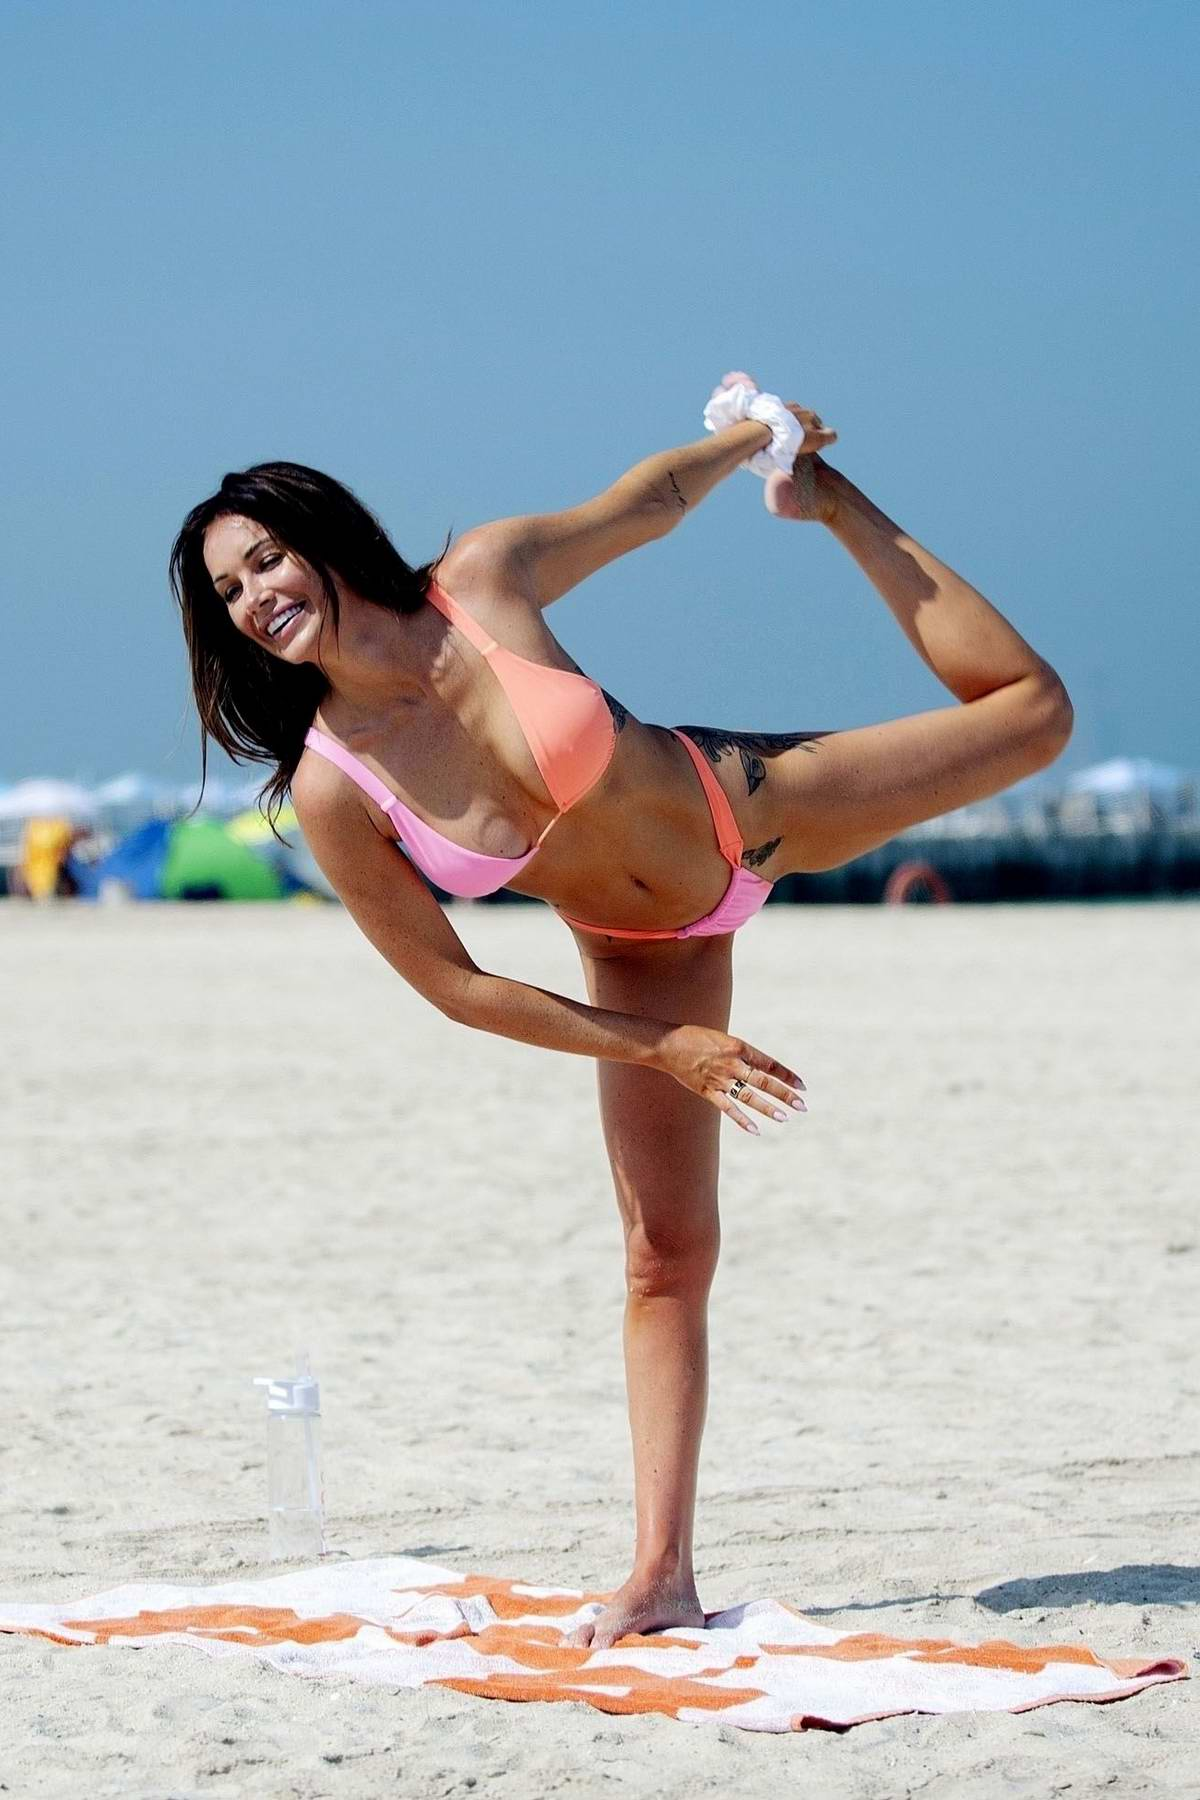 Laura Anderson wears a two-toned pink and orange bikini during a beach yoga session in Dubai, UAE